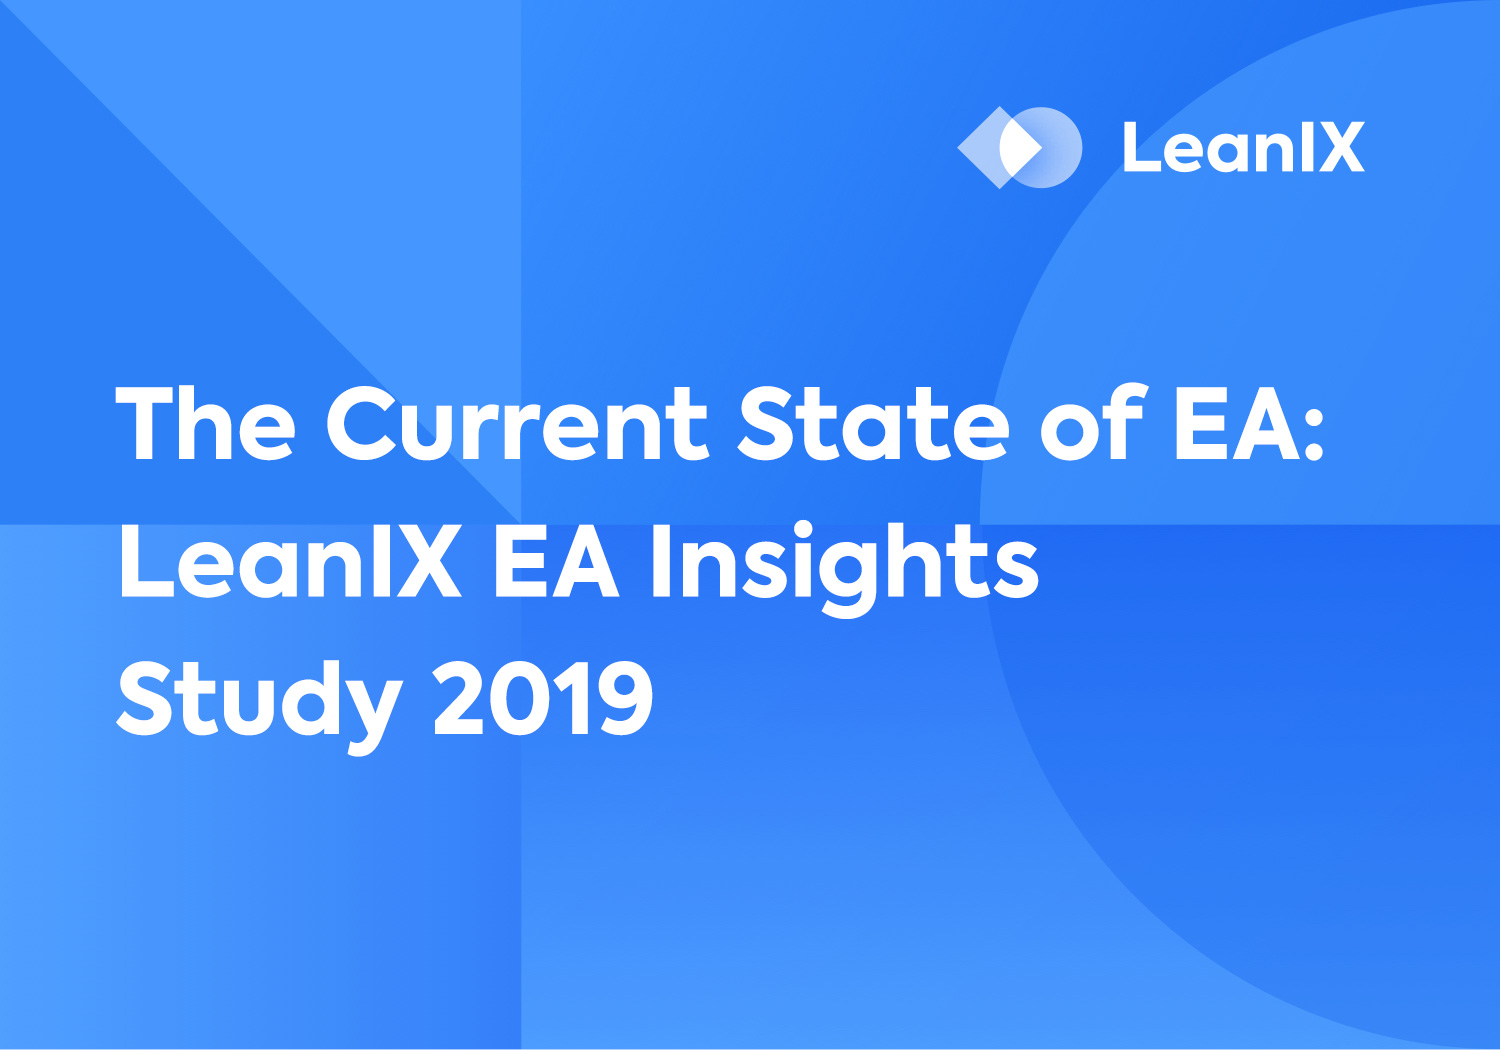 The Current State of EA – LeanIX EA Insights Study 2019